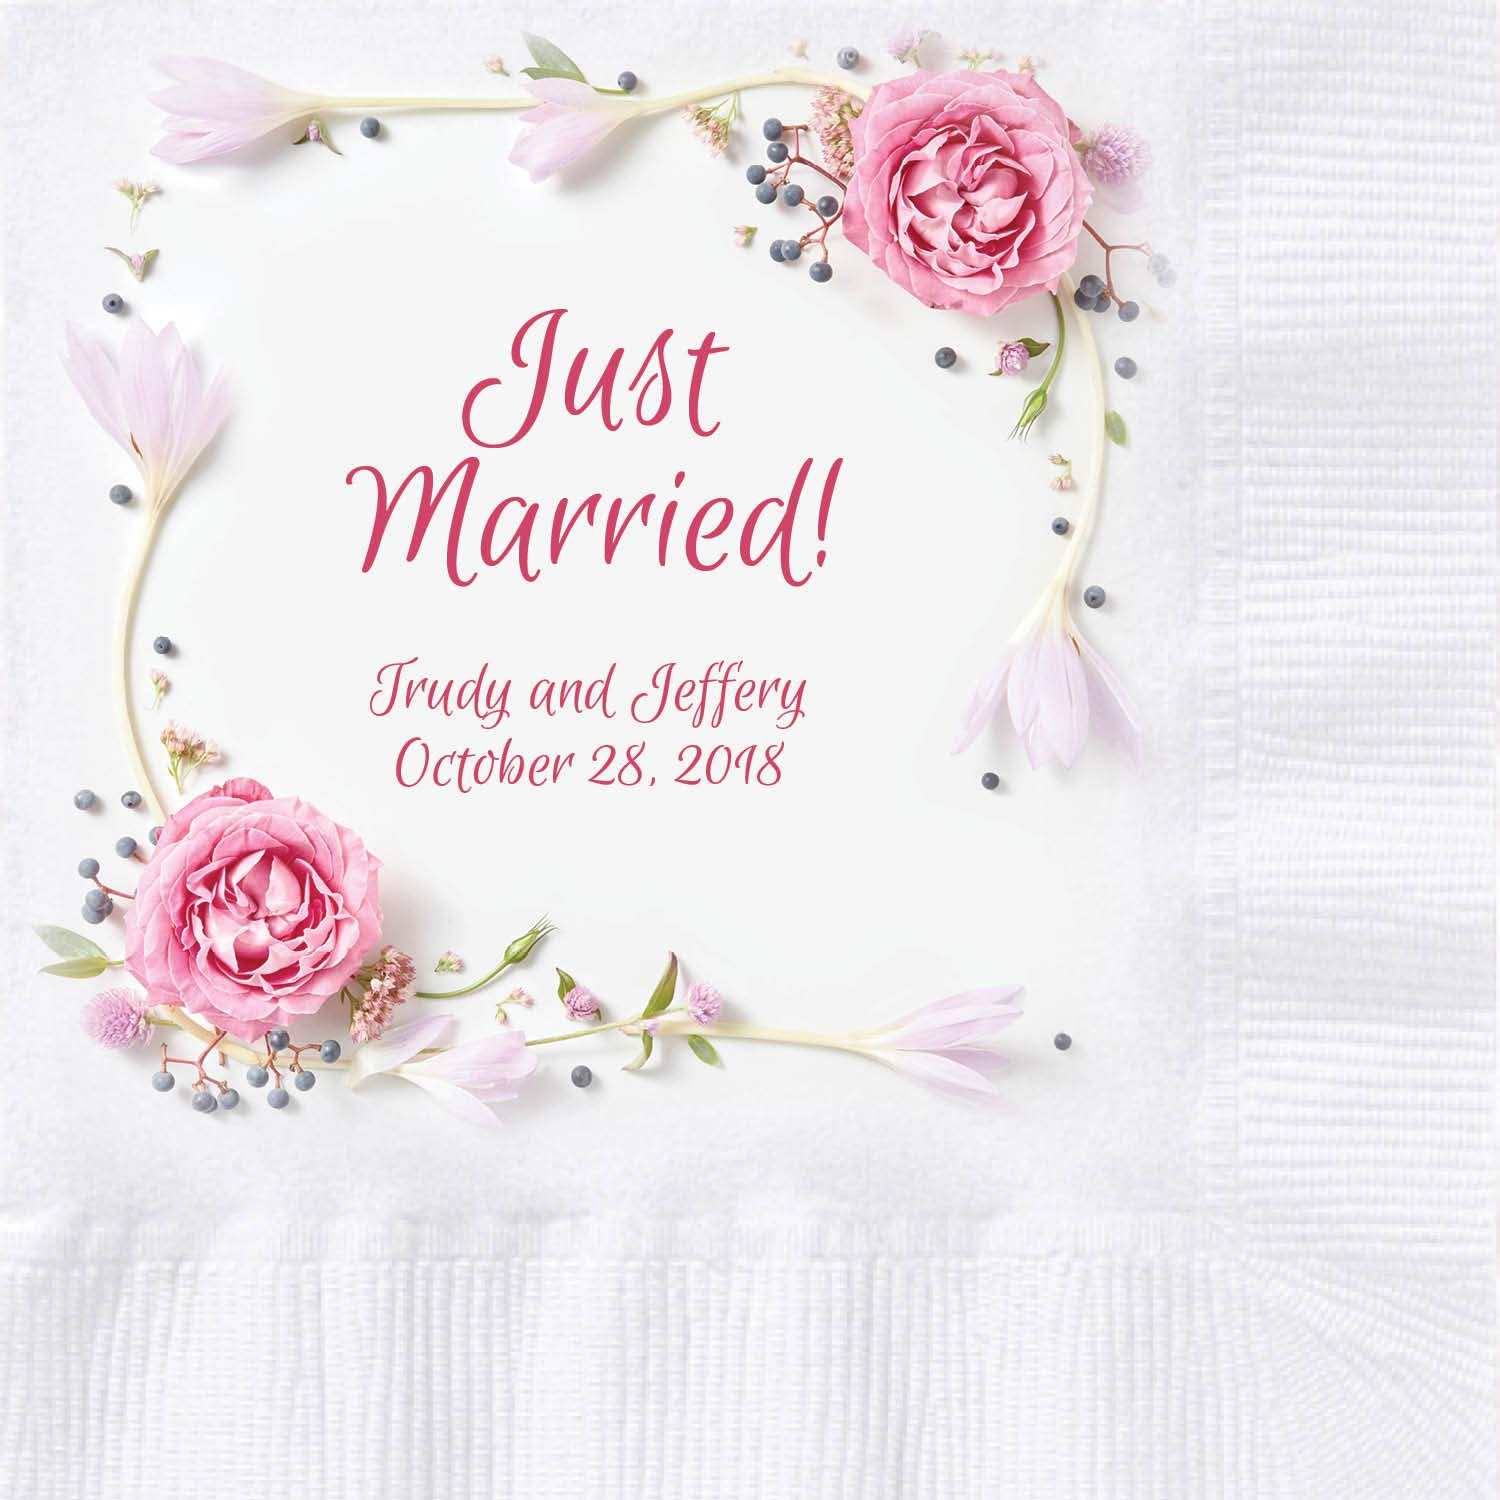 Custom Printed Wedding Napkins with Rose Wreath Border, 250 ct by Hoffmaster Group